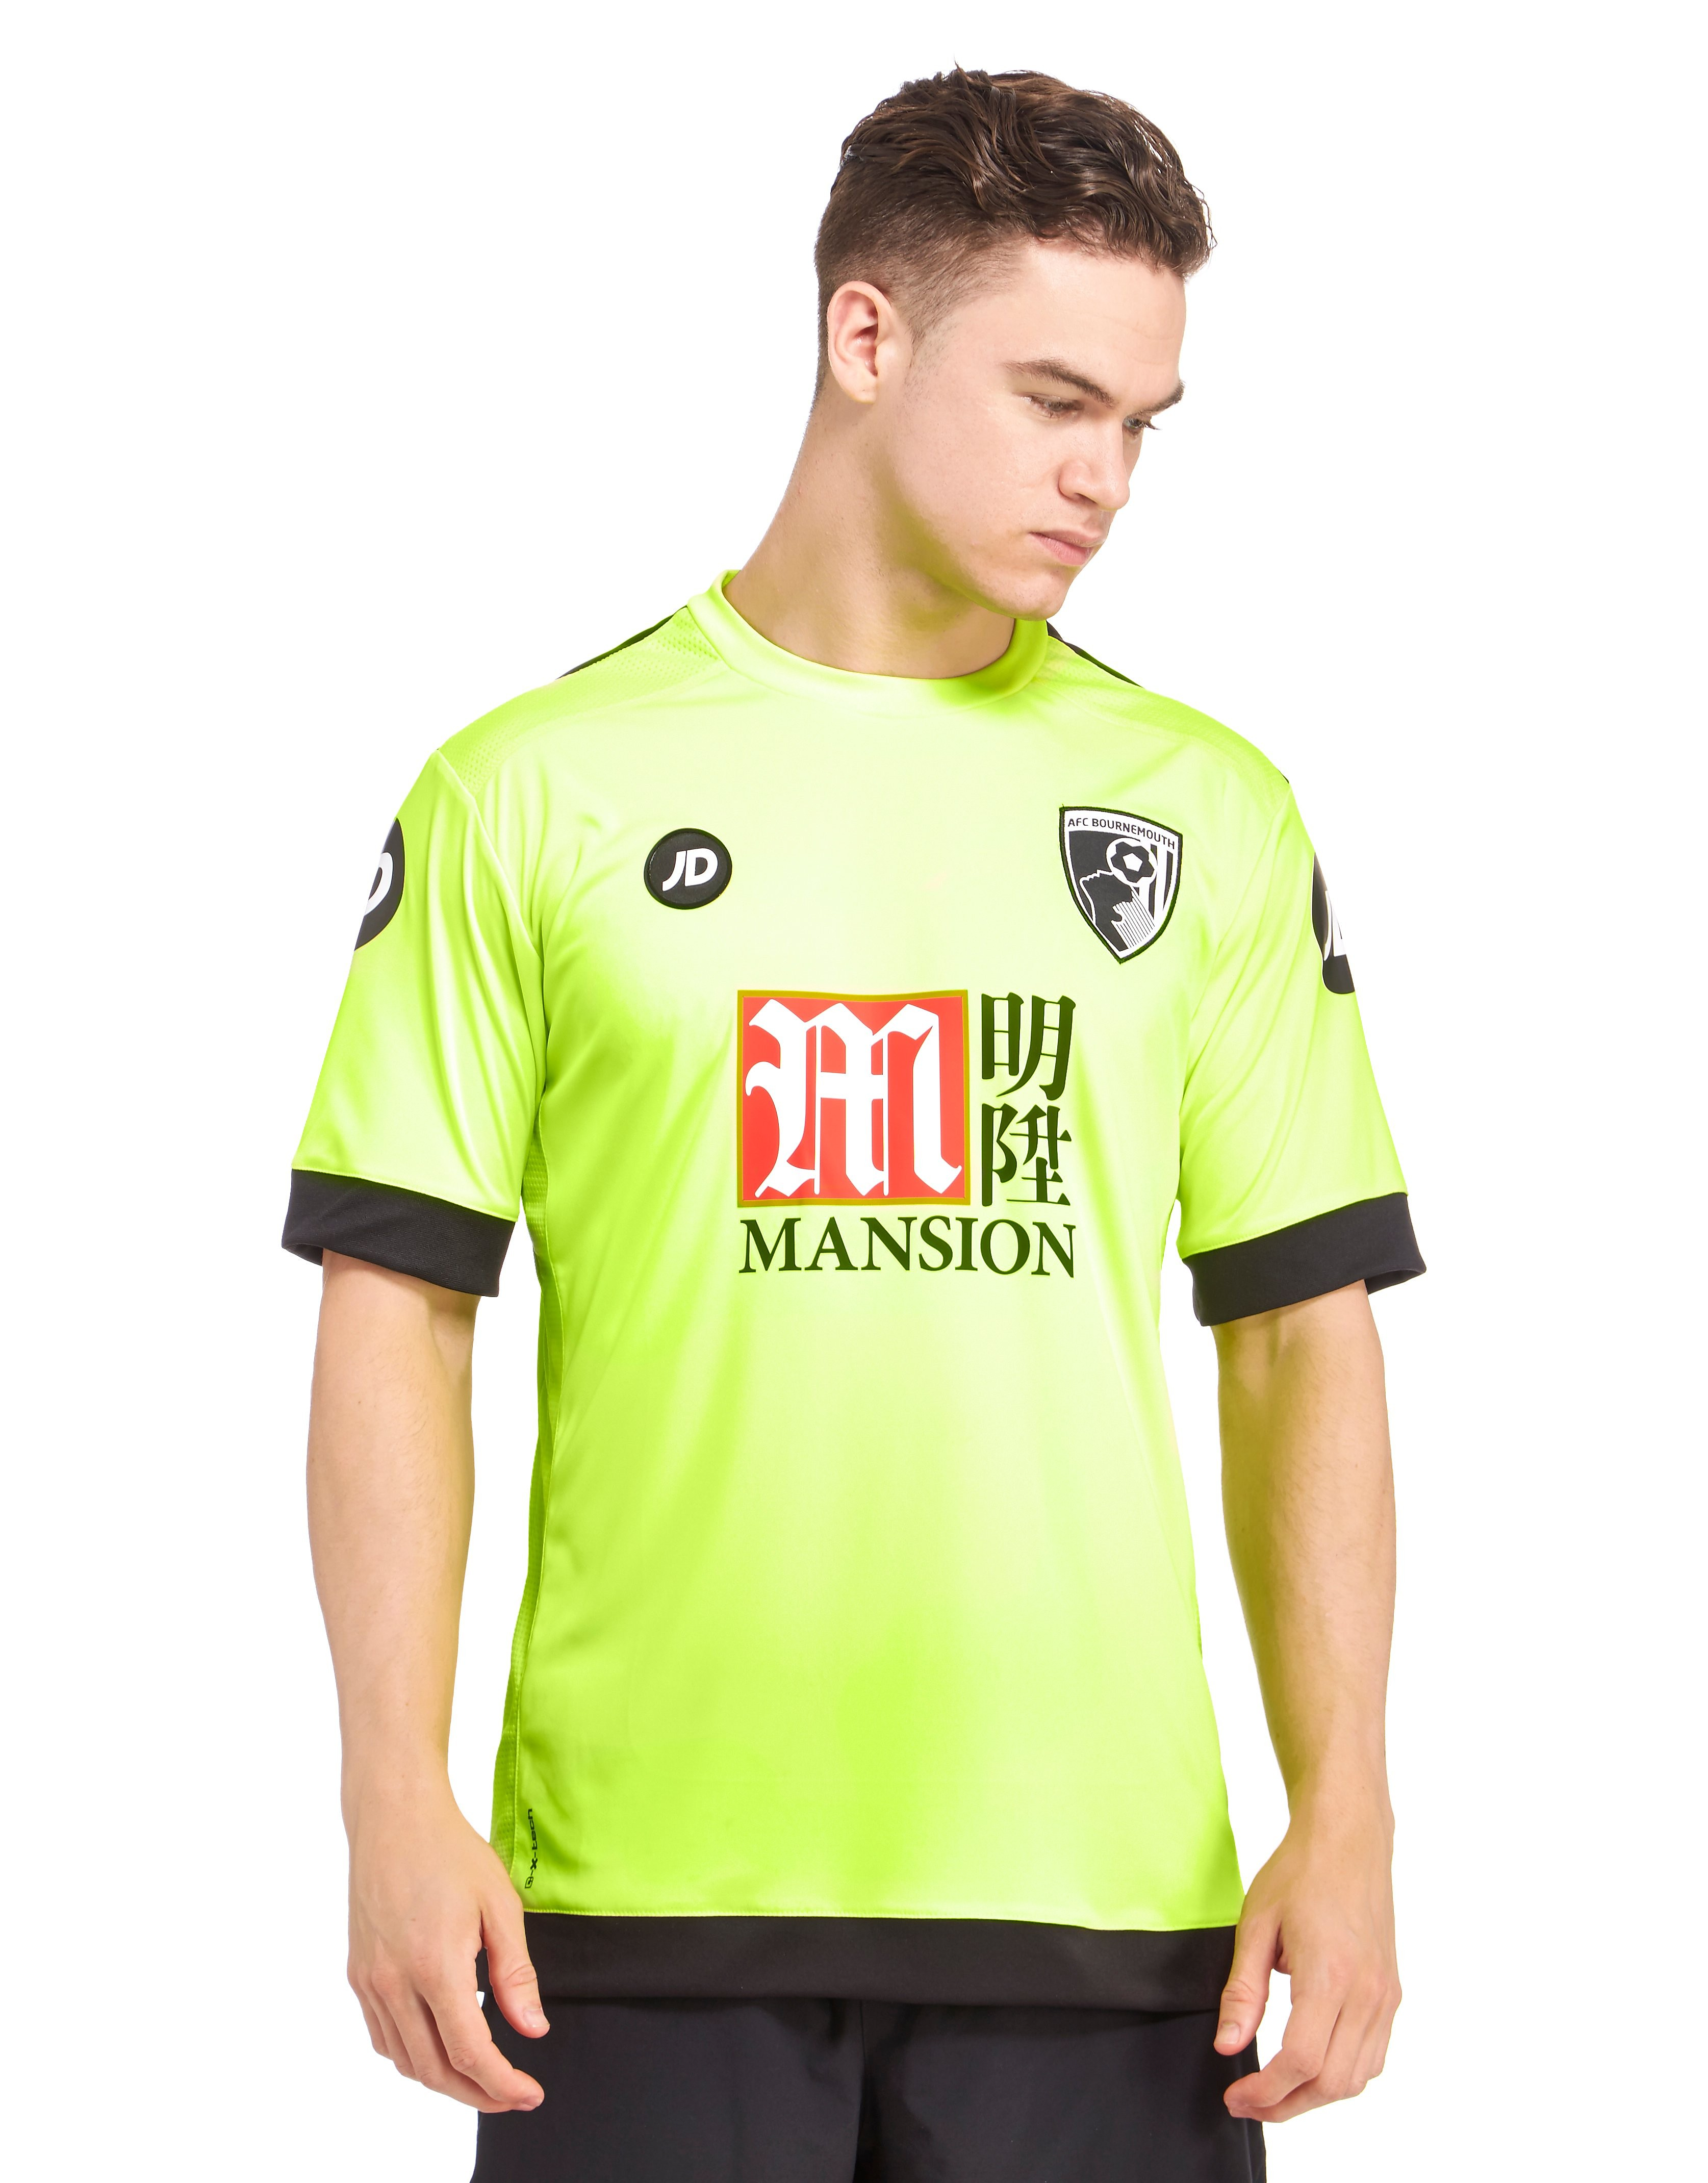 JD AFC Bournemouth 2016/17 Third Shirt